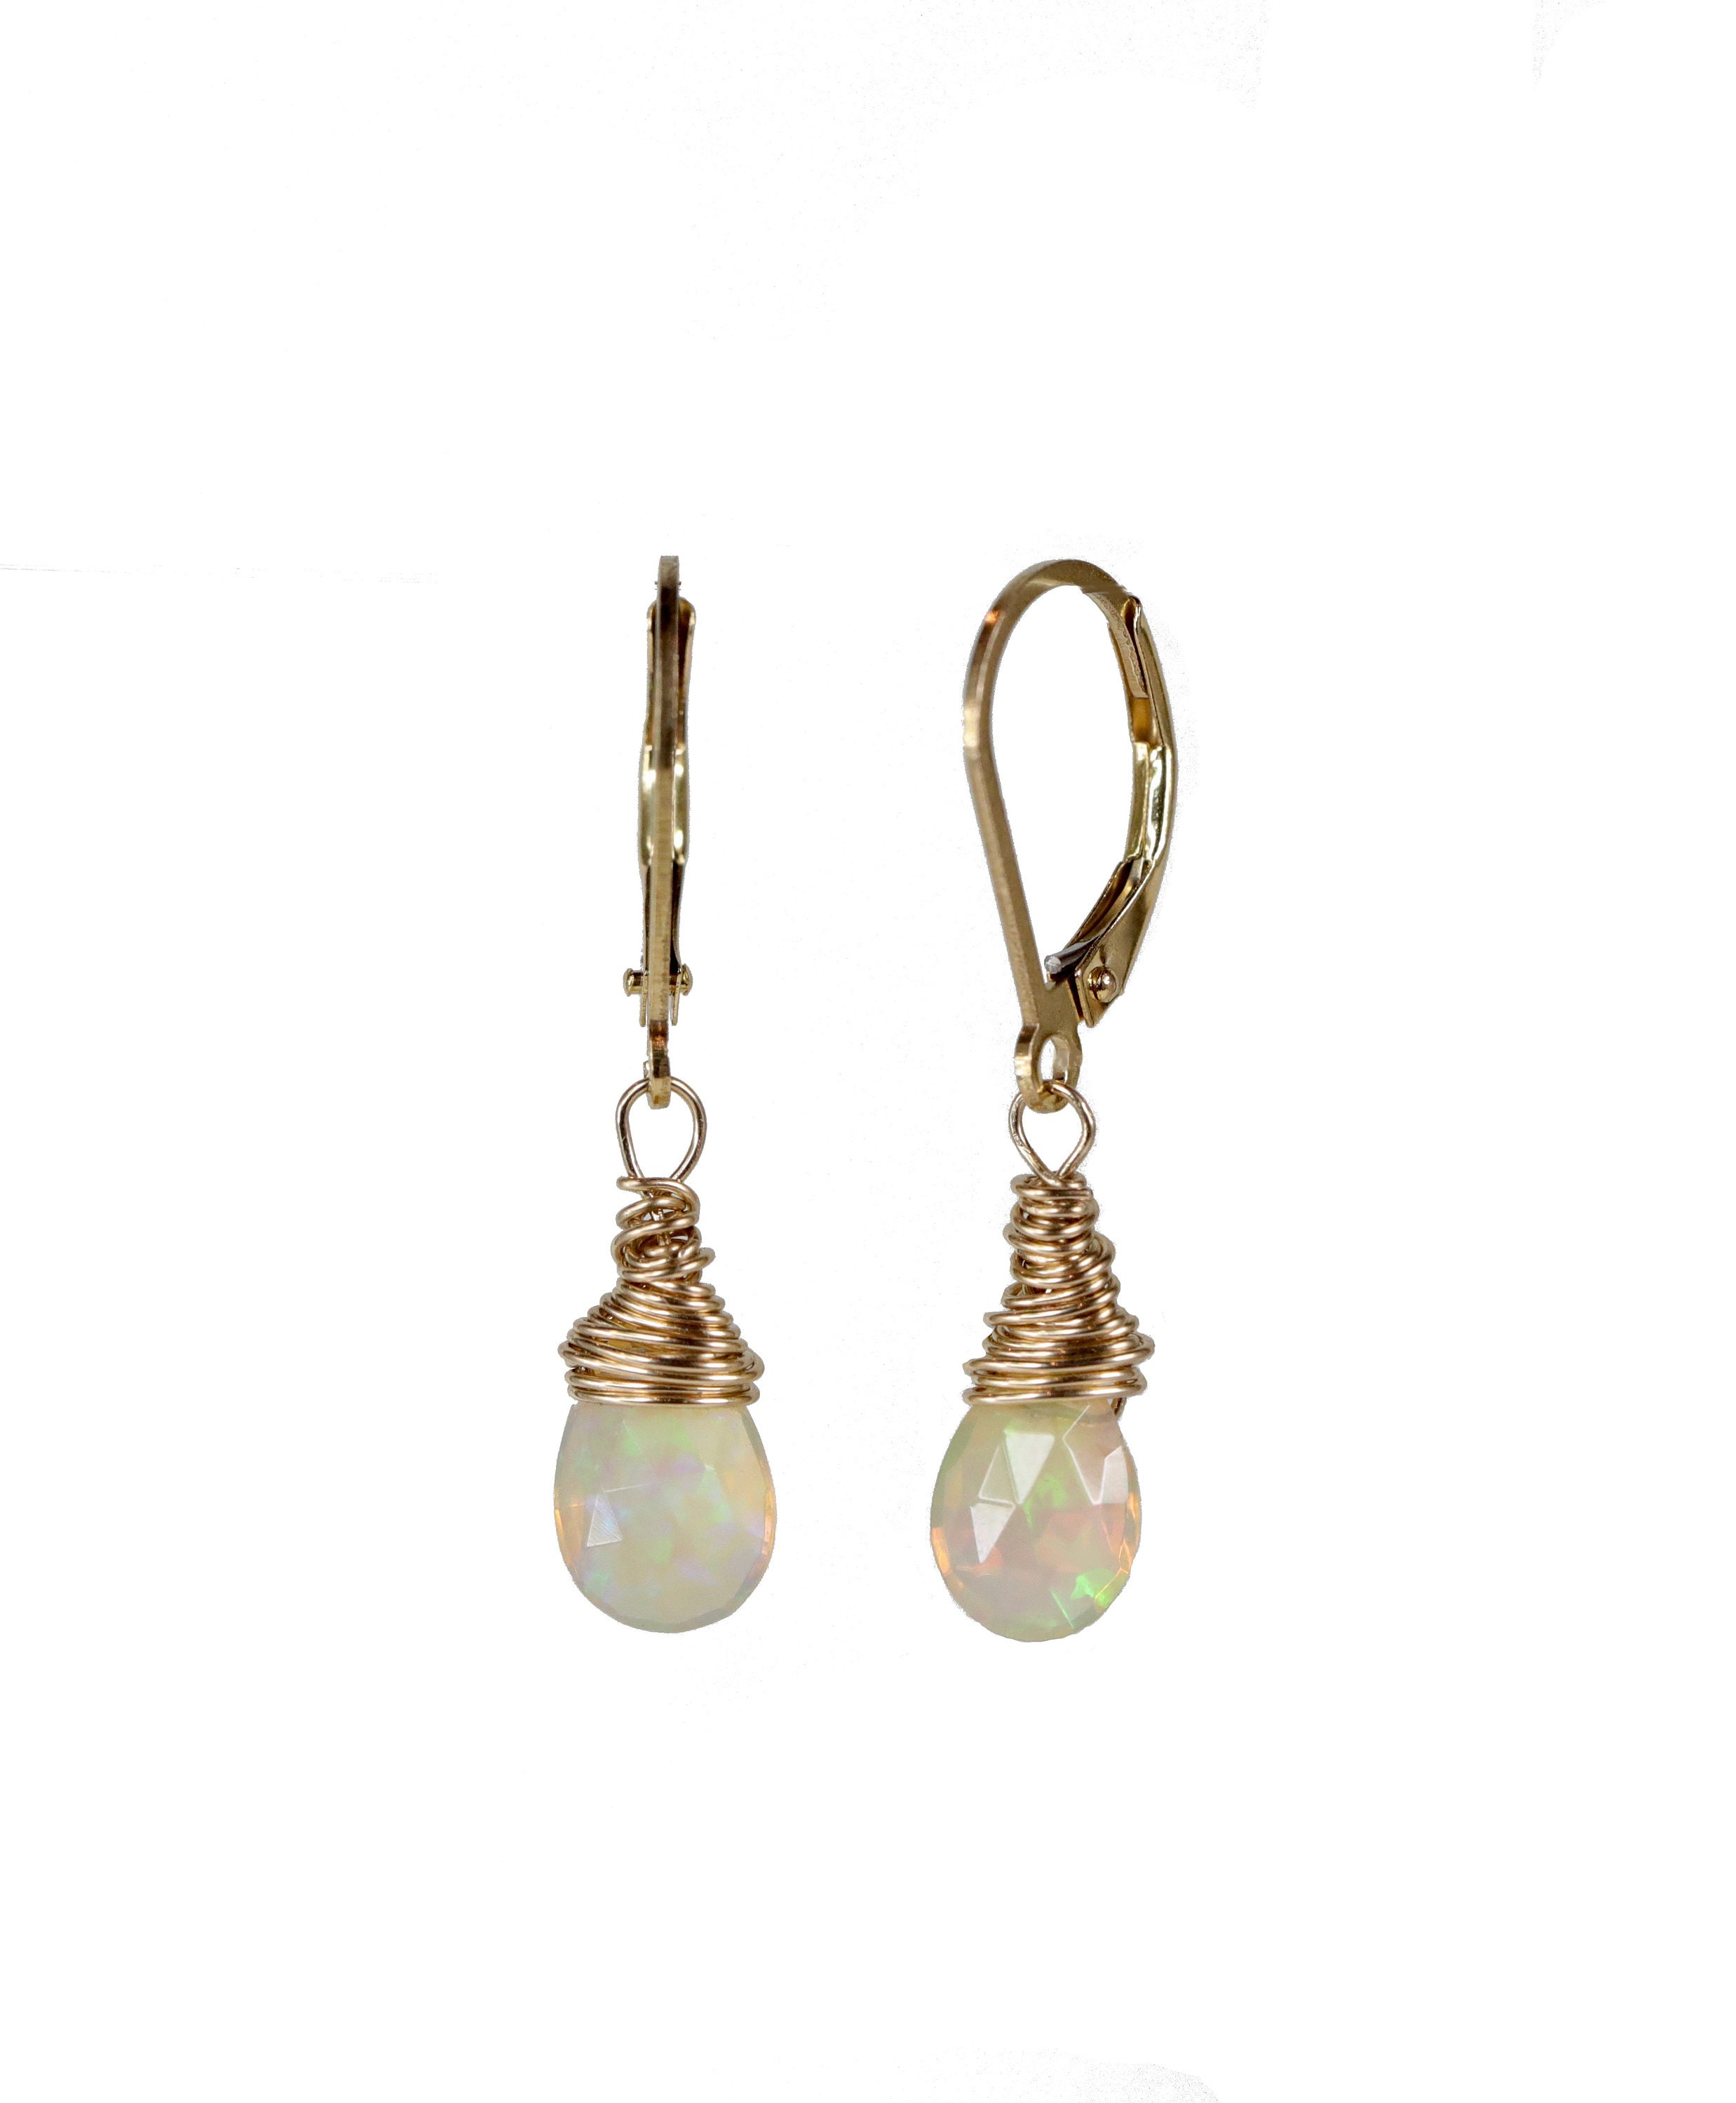 Opal Earring Faceted White Drop October Birthstone Birthday Gift For Her Ethiopian 14k Gold Filled